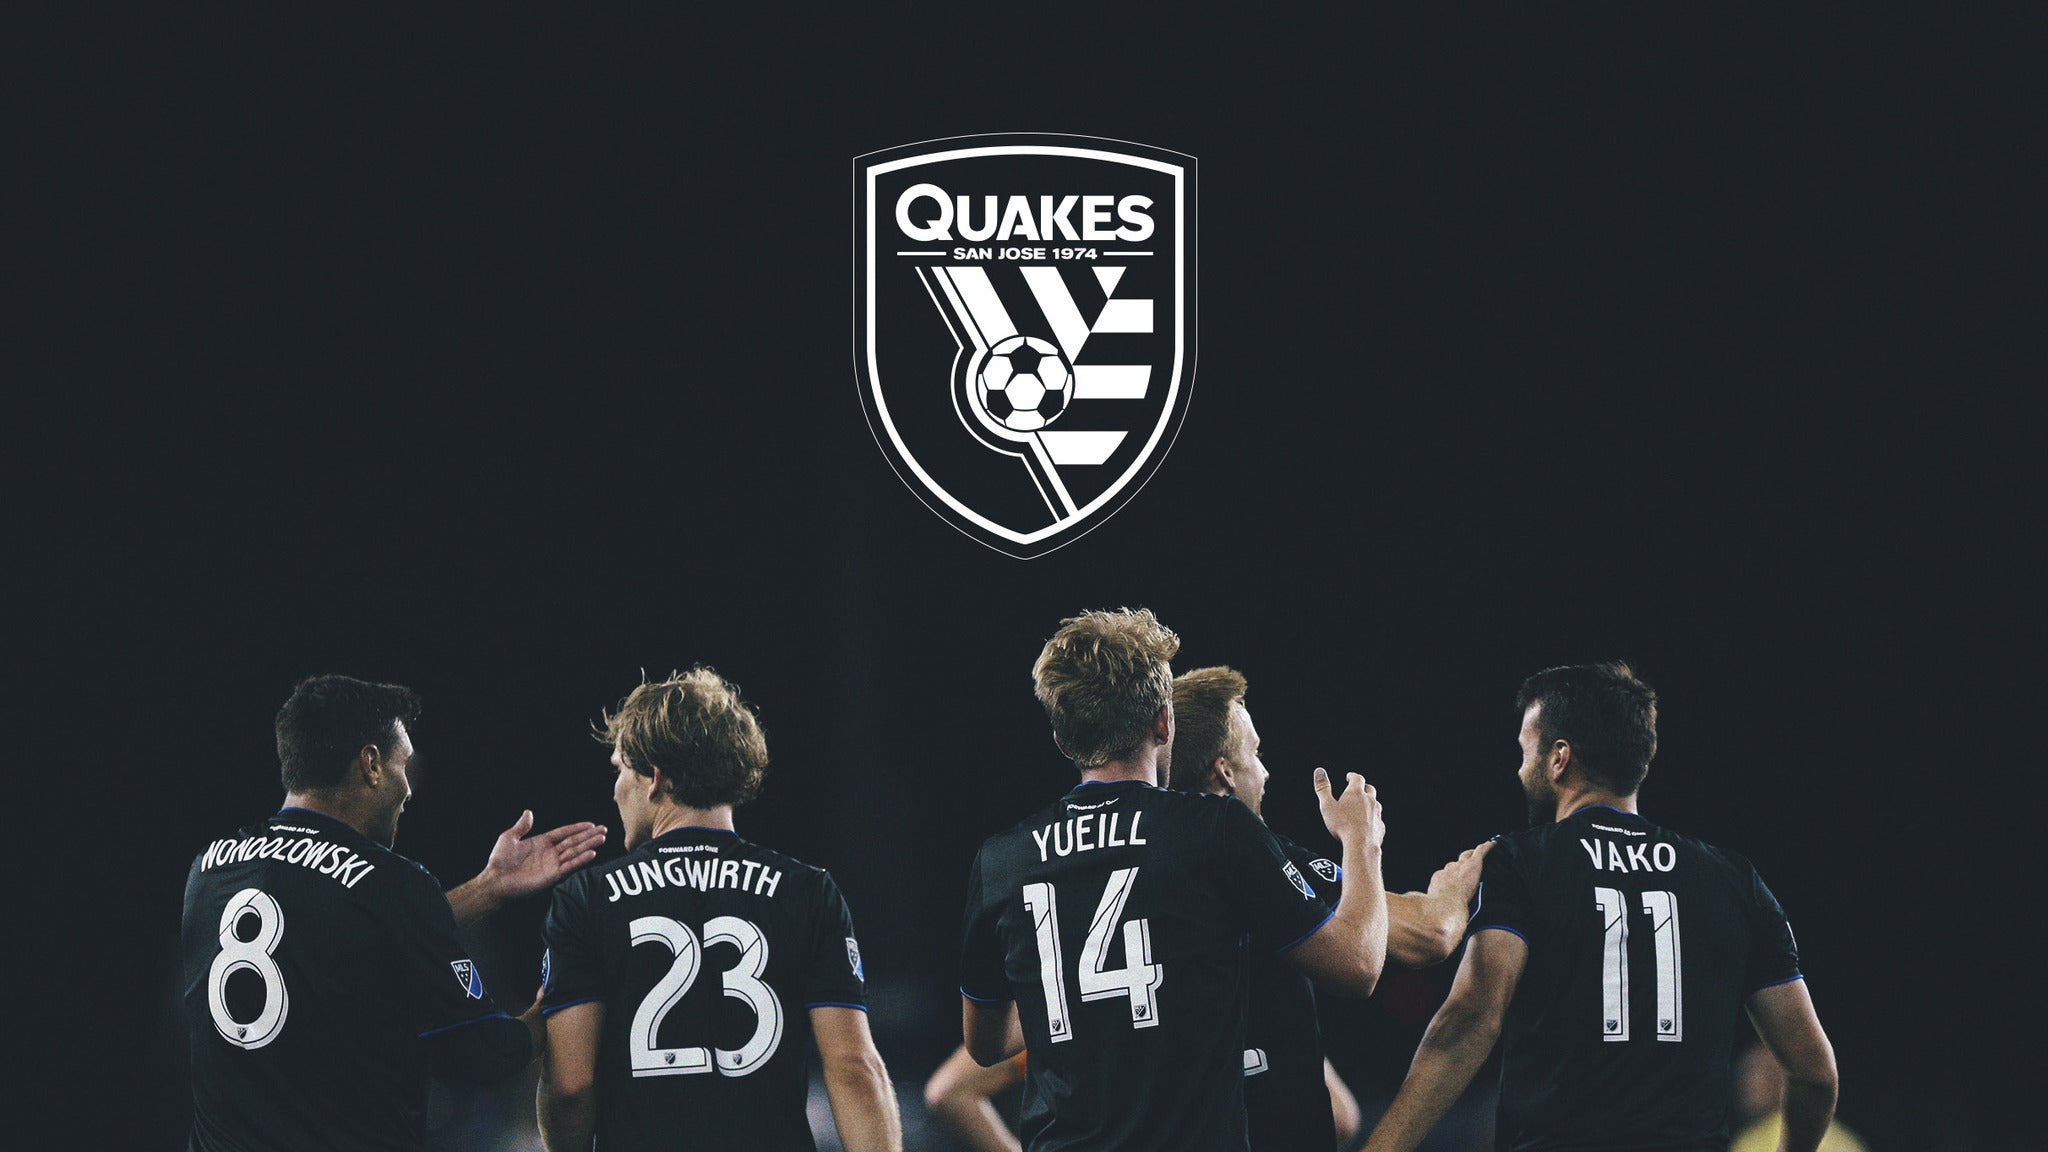 San Jose Earthquakes vs. Nashville SC at Earthquakes Stadium